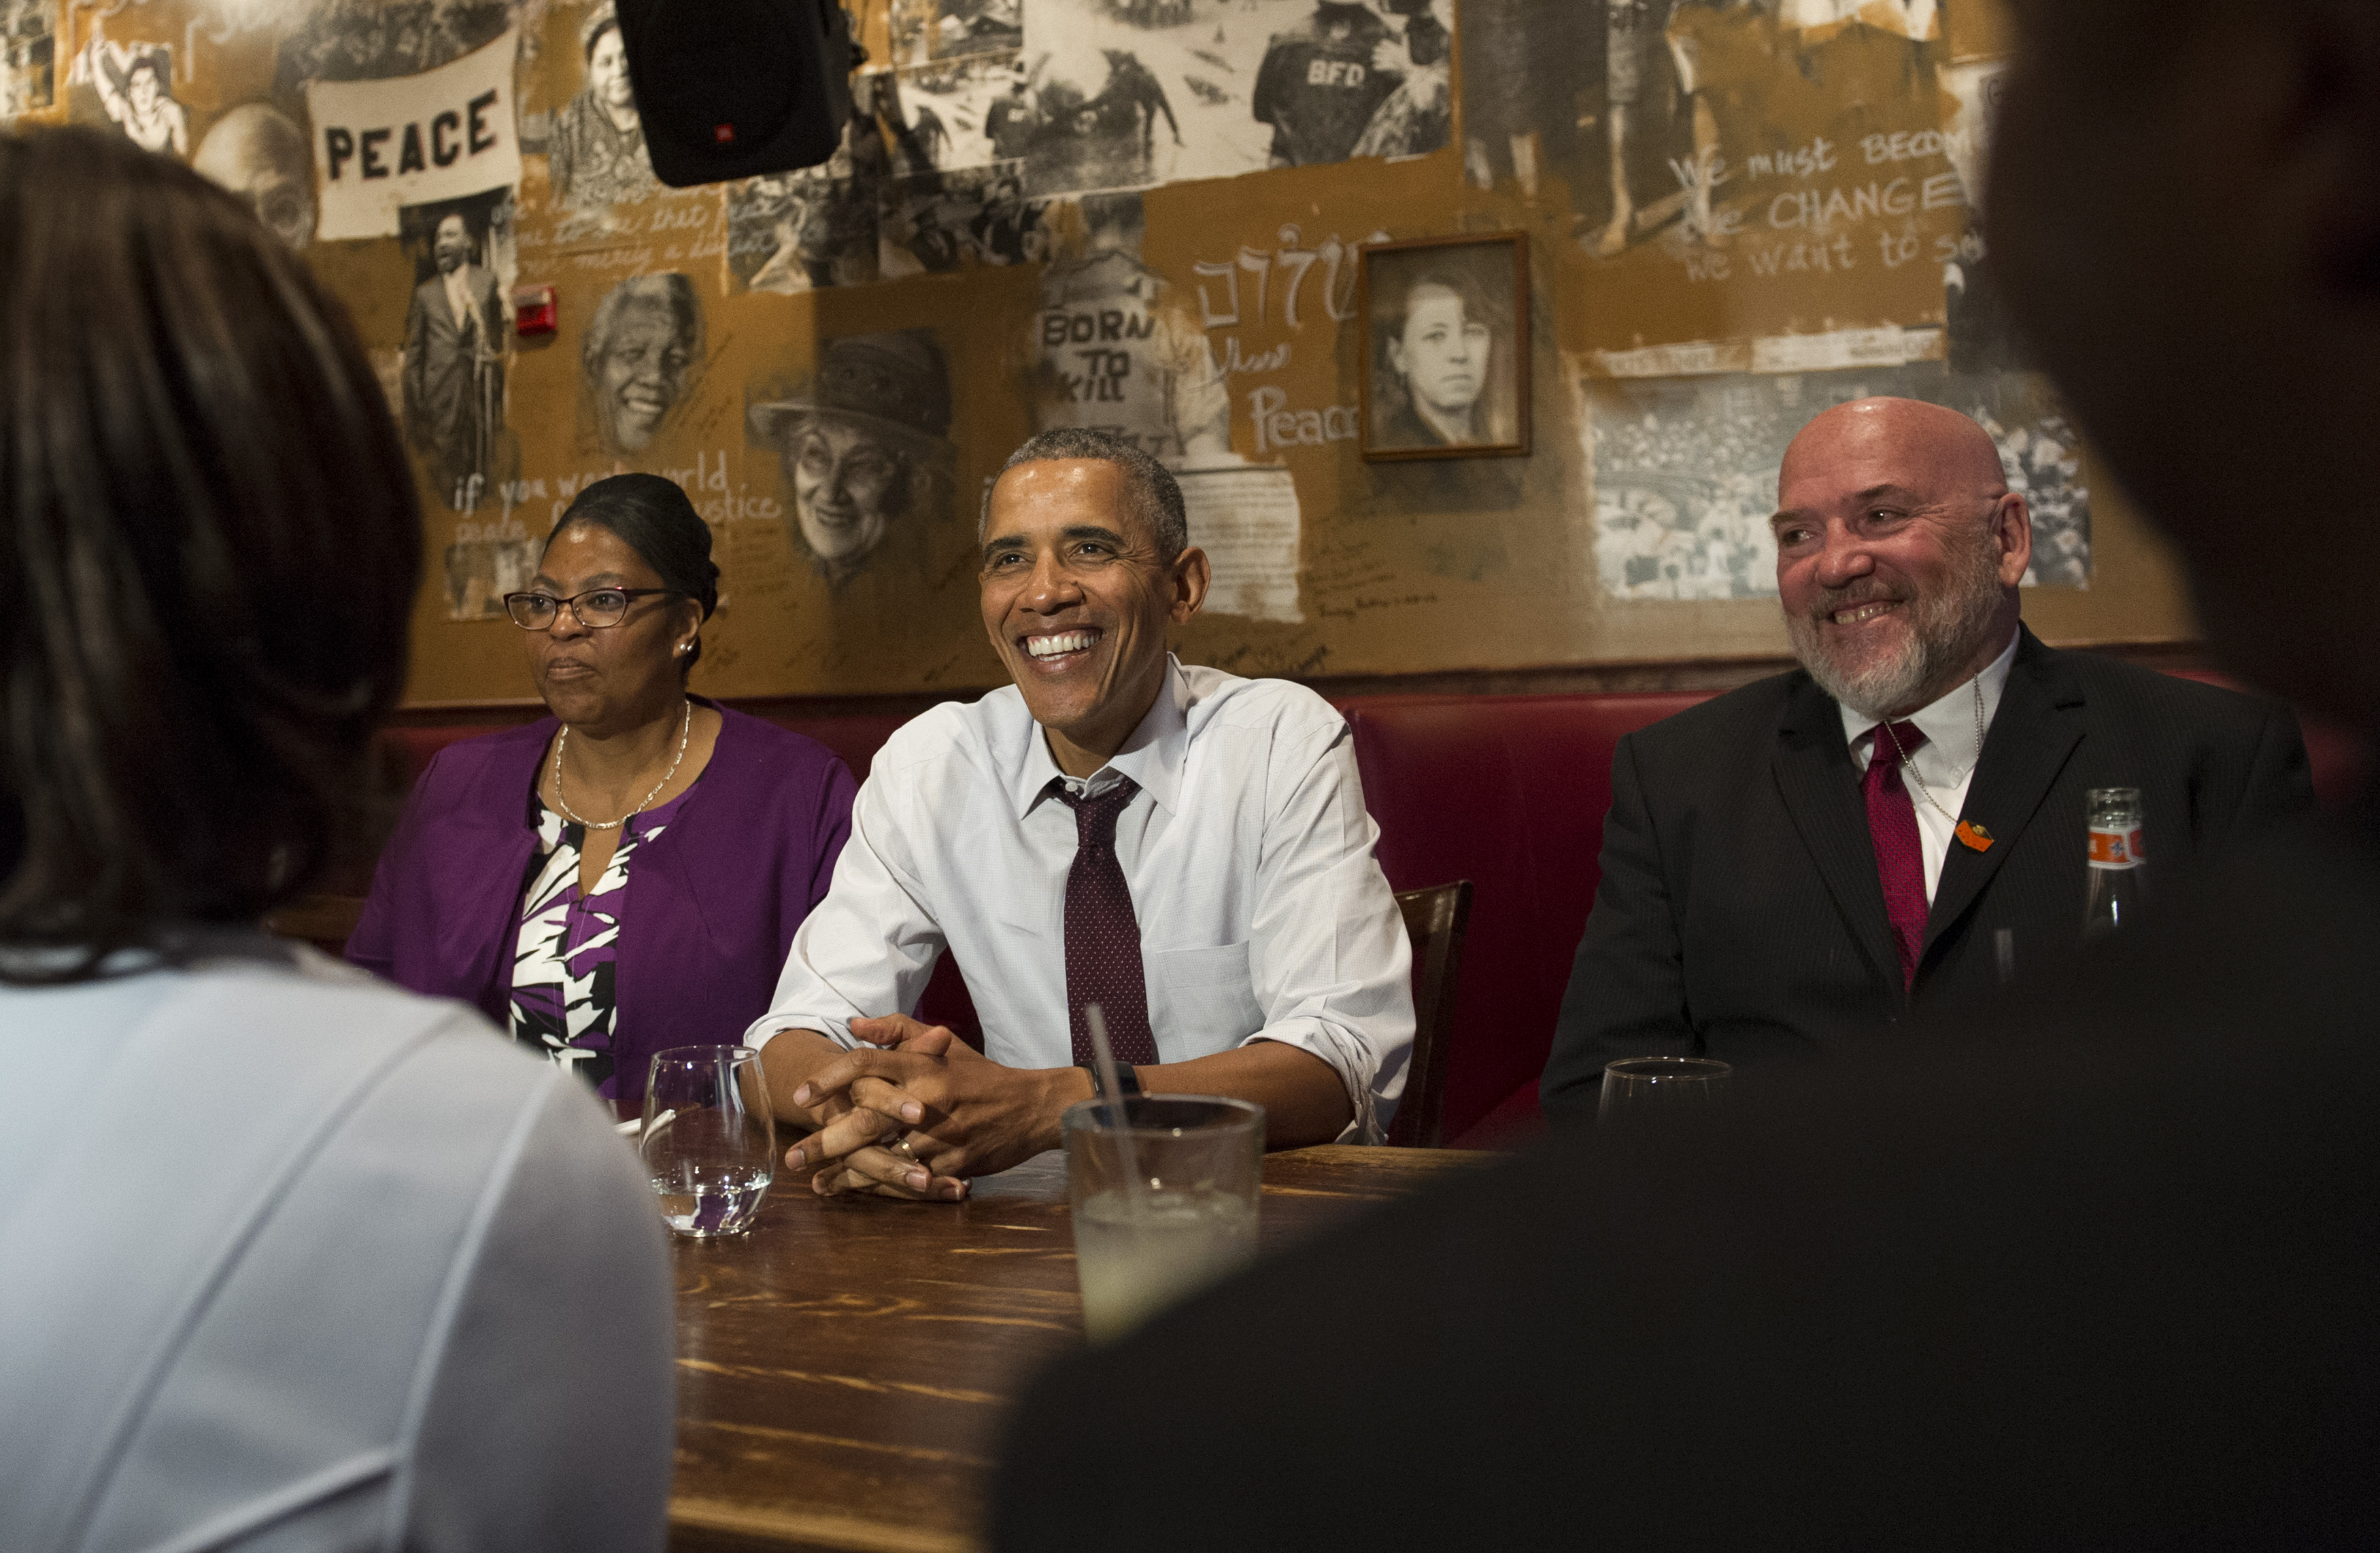 U.S. President Barack Obama speaks to the media after having lunch with formerly incarcerated individuals who have received commutations, including Ramona Brant (L) and Phillip Emmert (R), at Bus Boys and Poets restaurant on March 30, 2016 in Washington, D.C. Pool—Getty Images